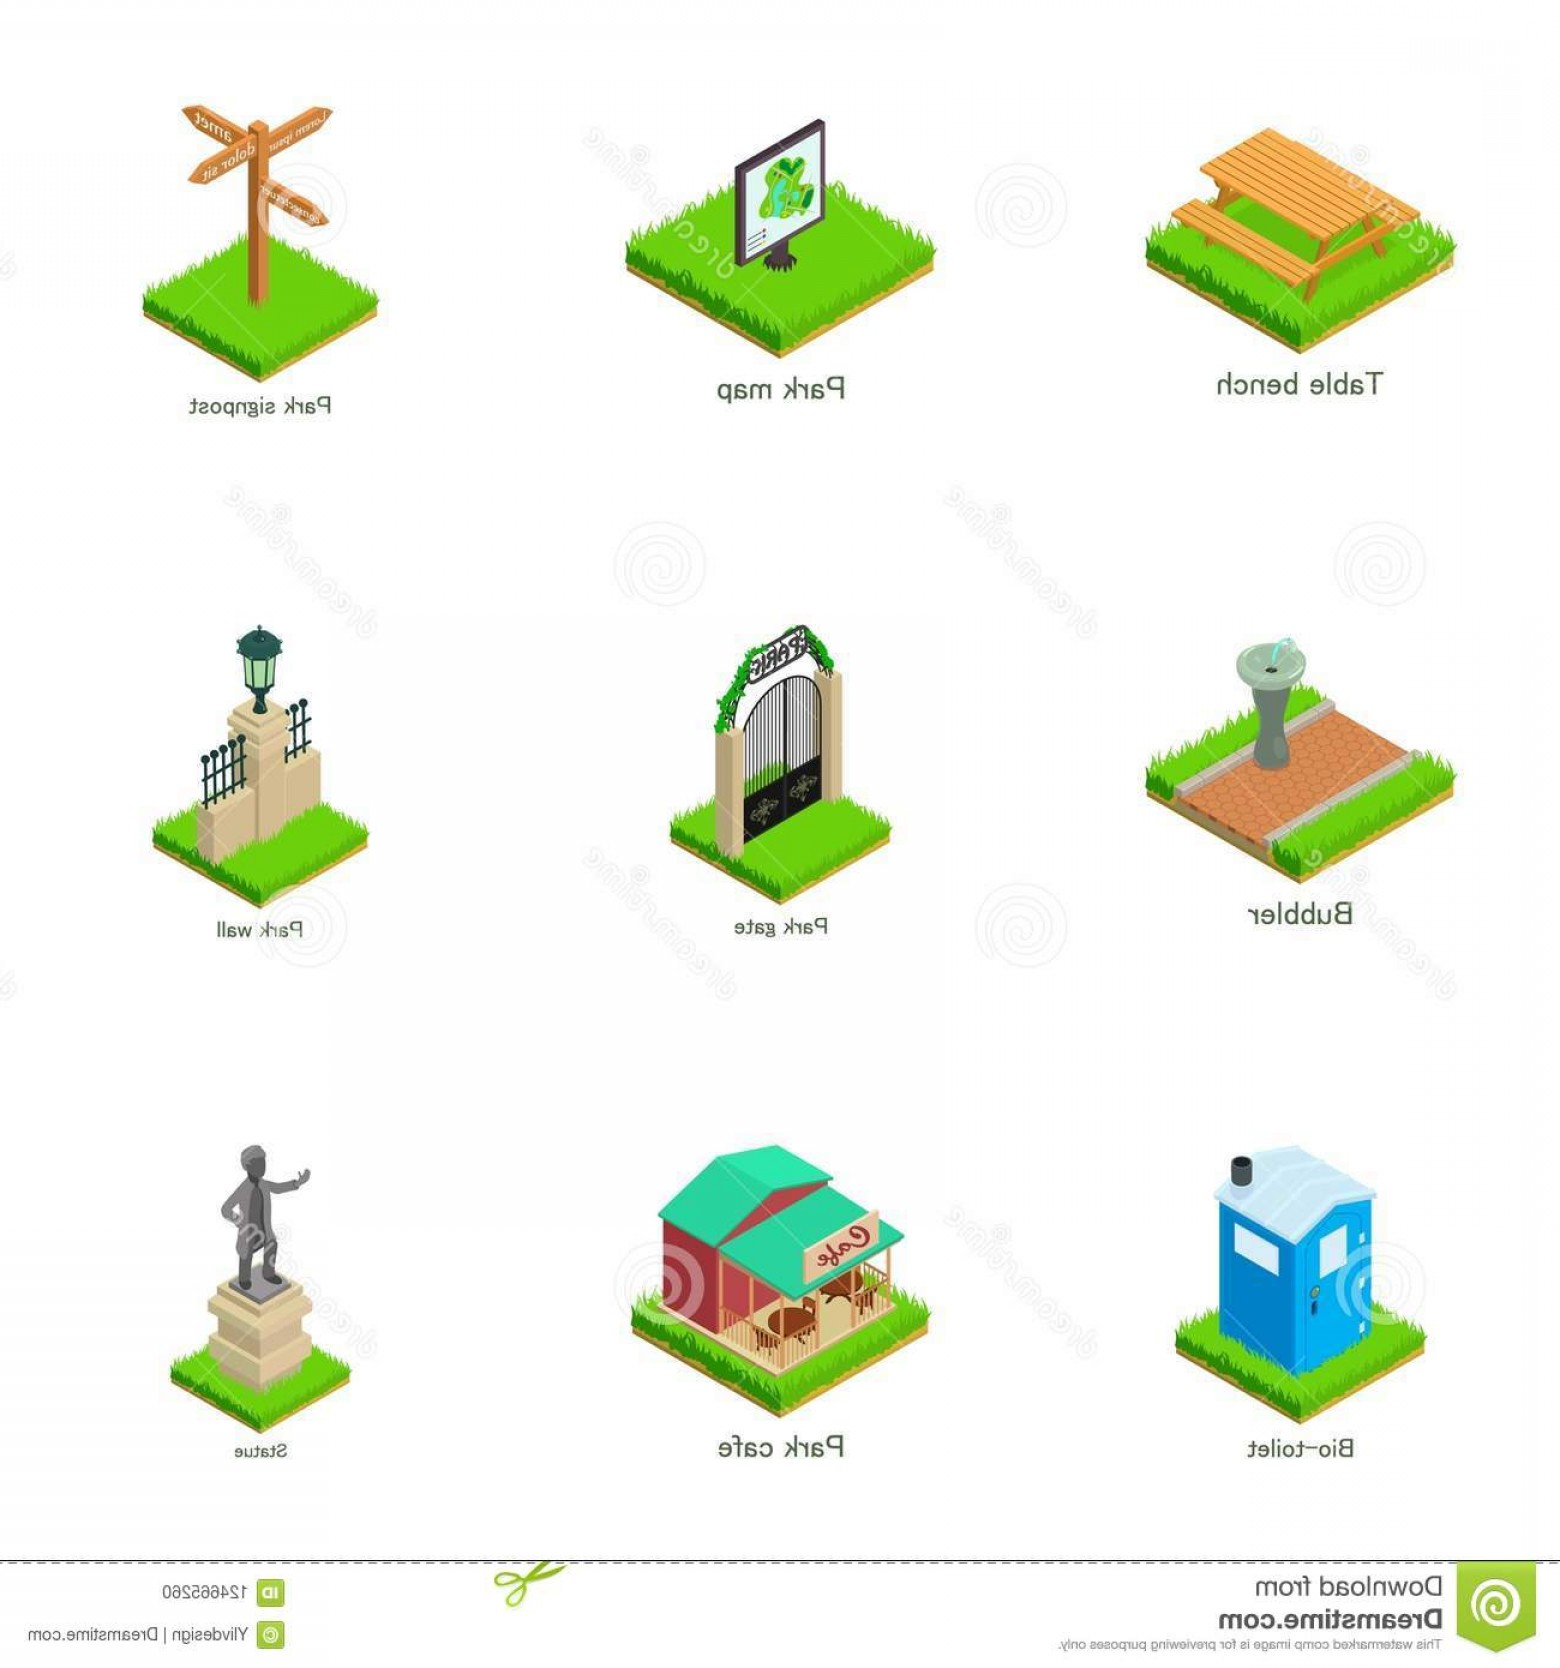 Belgium Theatre Vector Icons: Sights Town Icons Set Isometric Style Sights Town Icons Set Isometric Set Sights Town Vector Icons Web Image